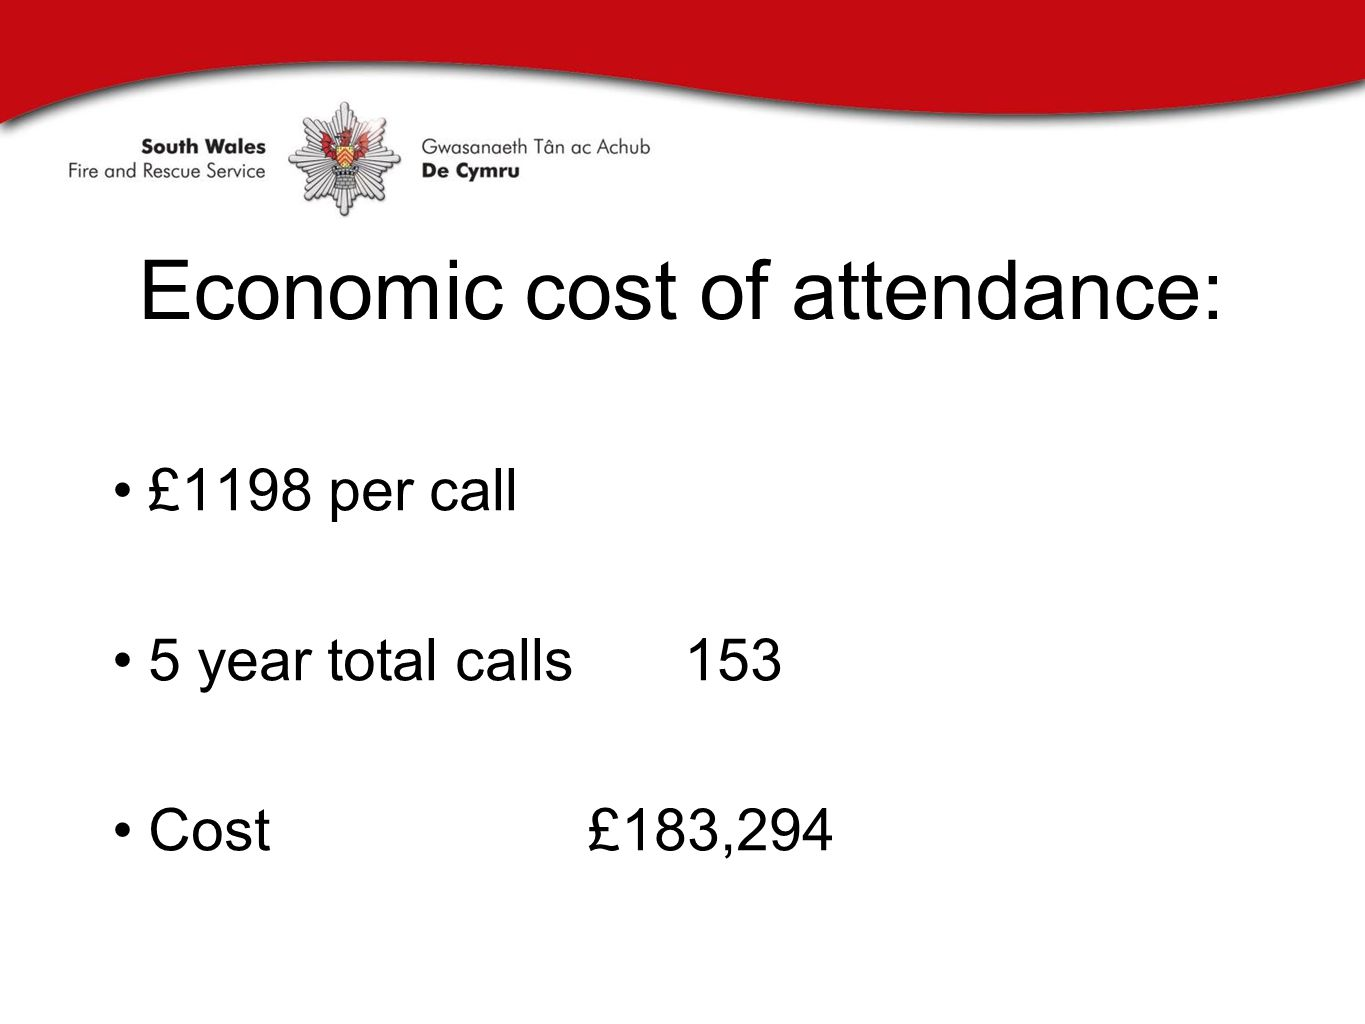 Economic cost of attendance: £1198 per call 5 year total calls153 Cost £183,294